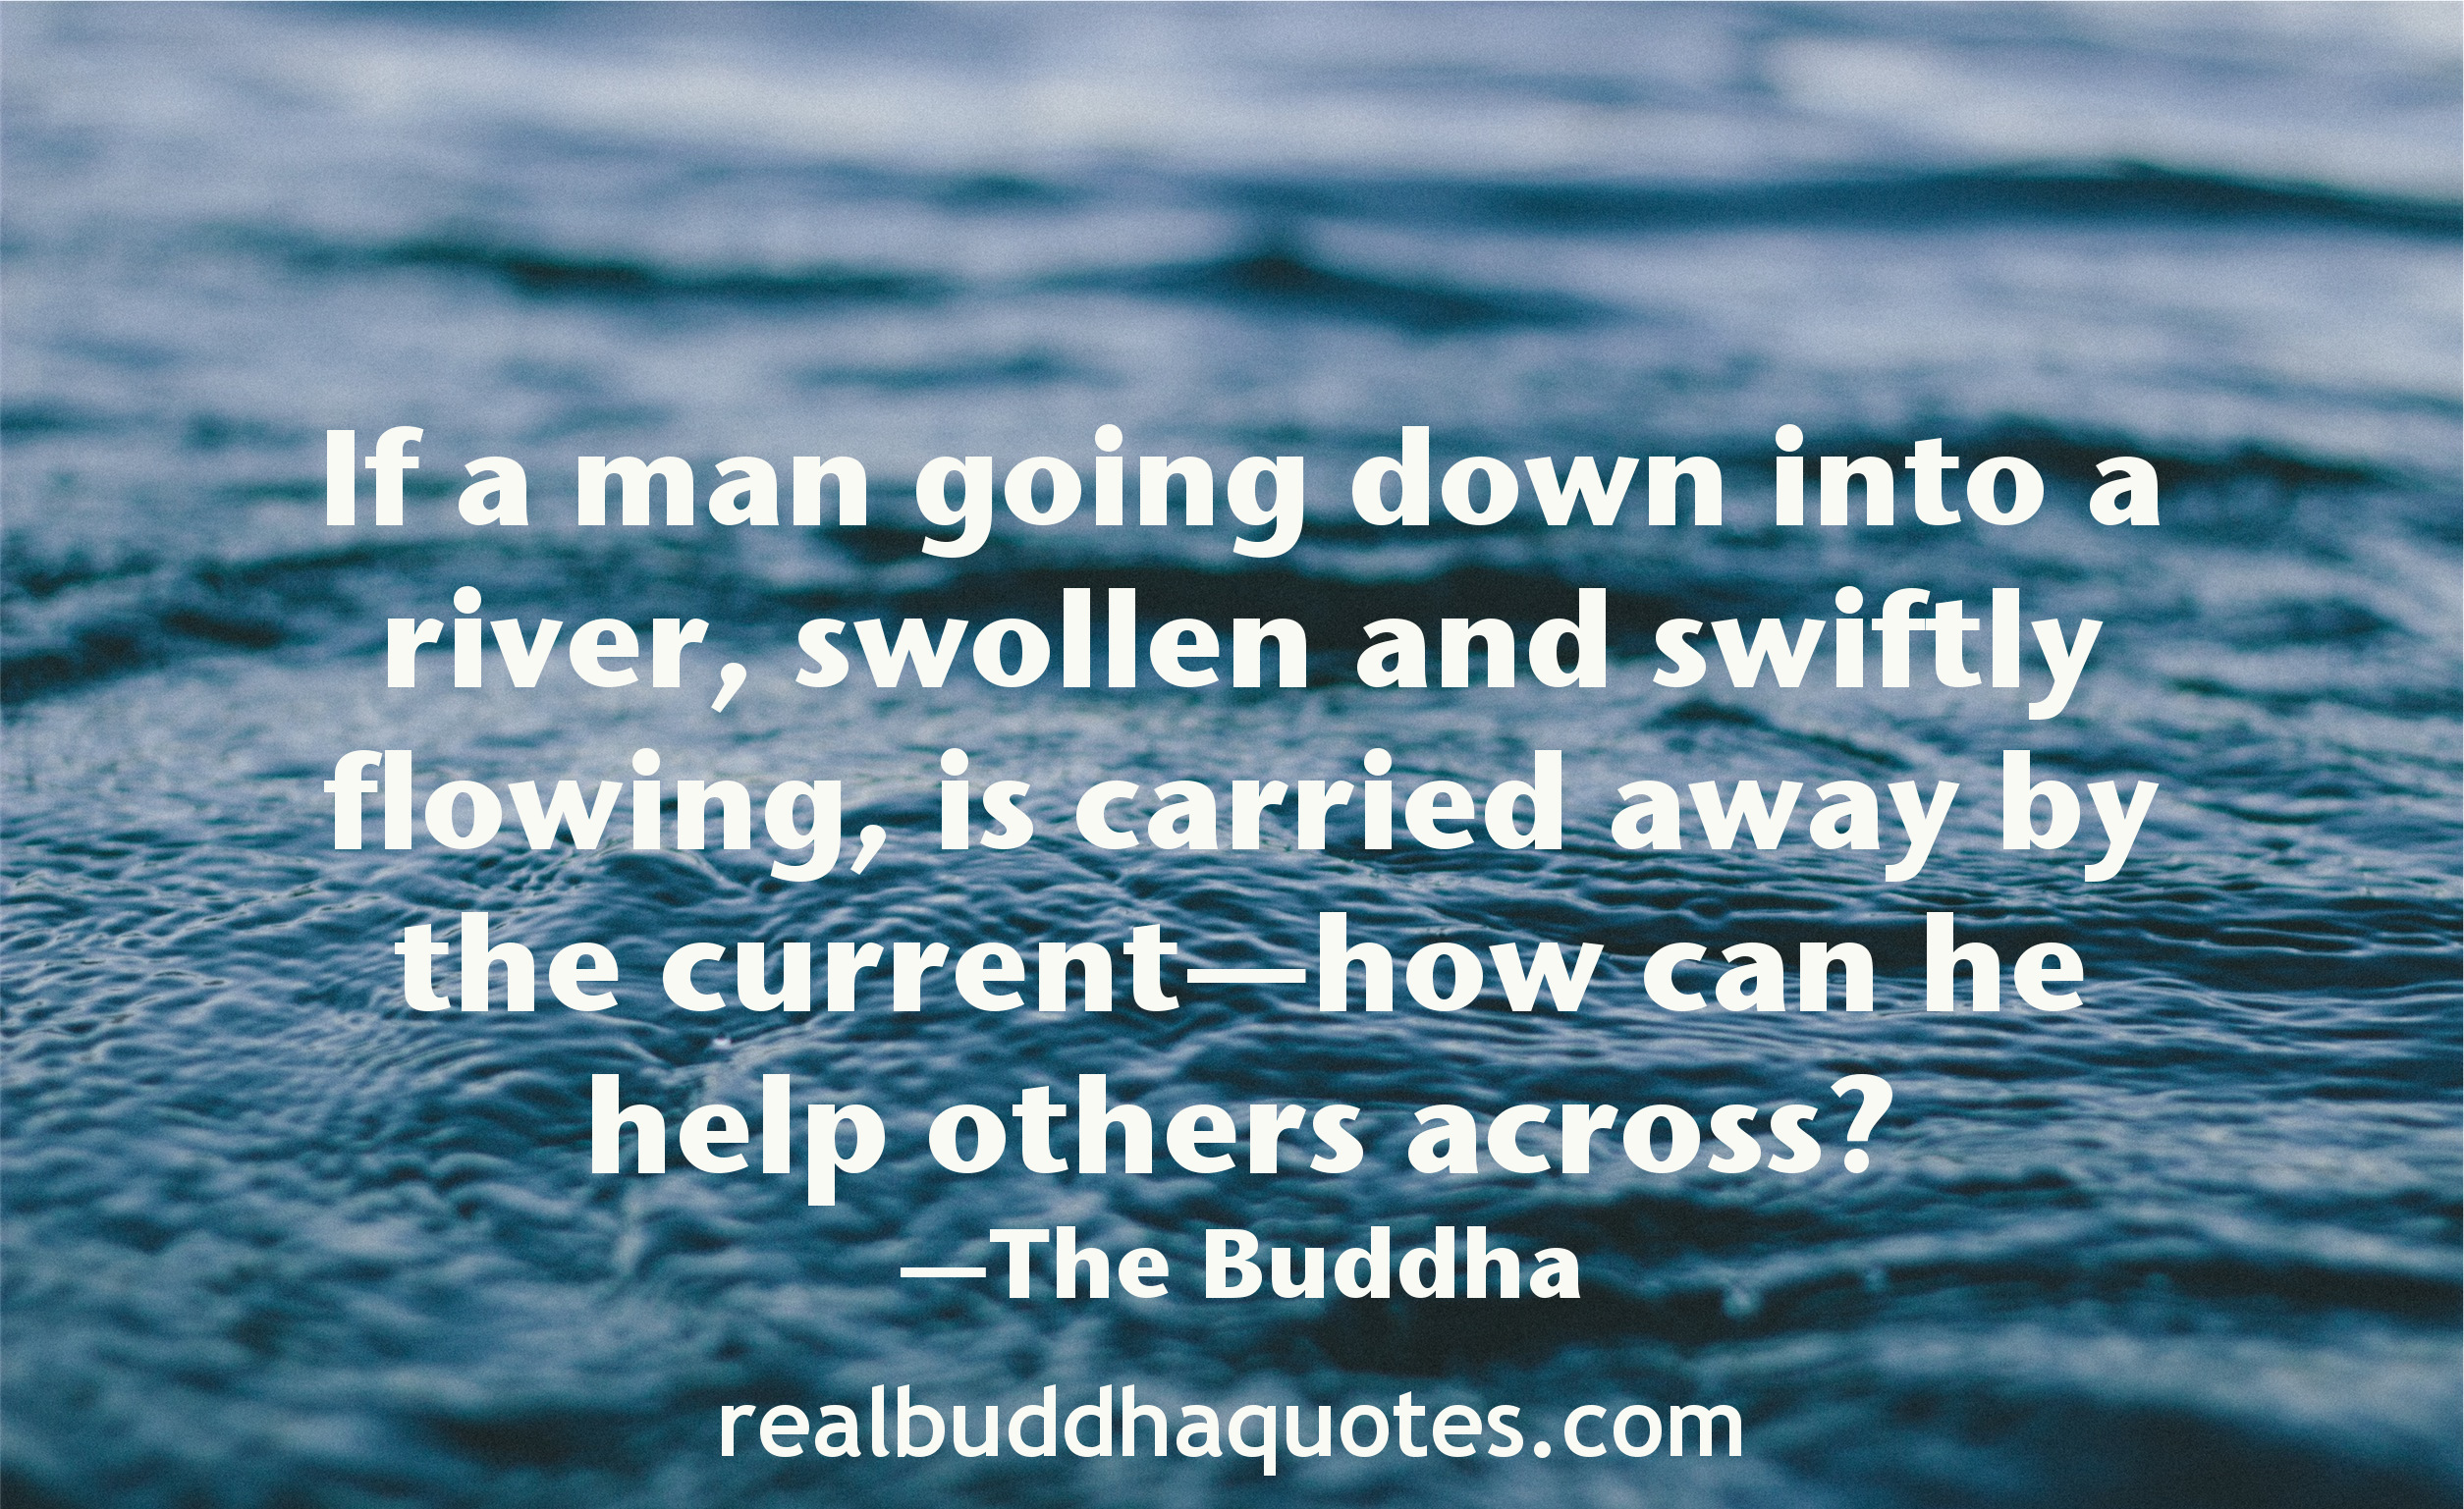 Real Buddha Quotes Delectable Buddha Quotes On Love Compassion Quotes Picture